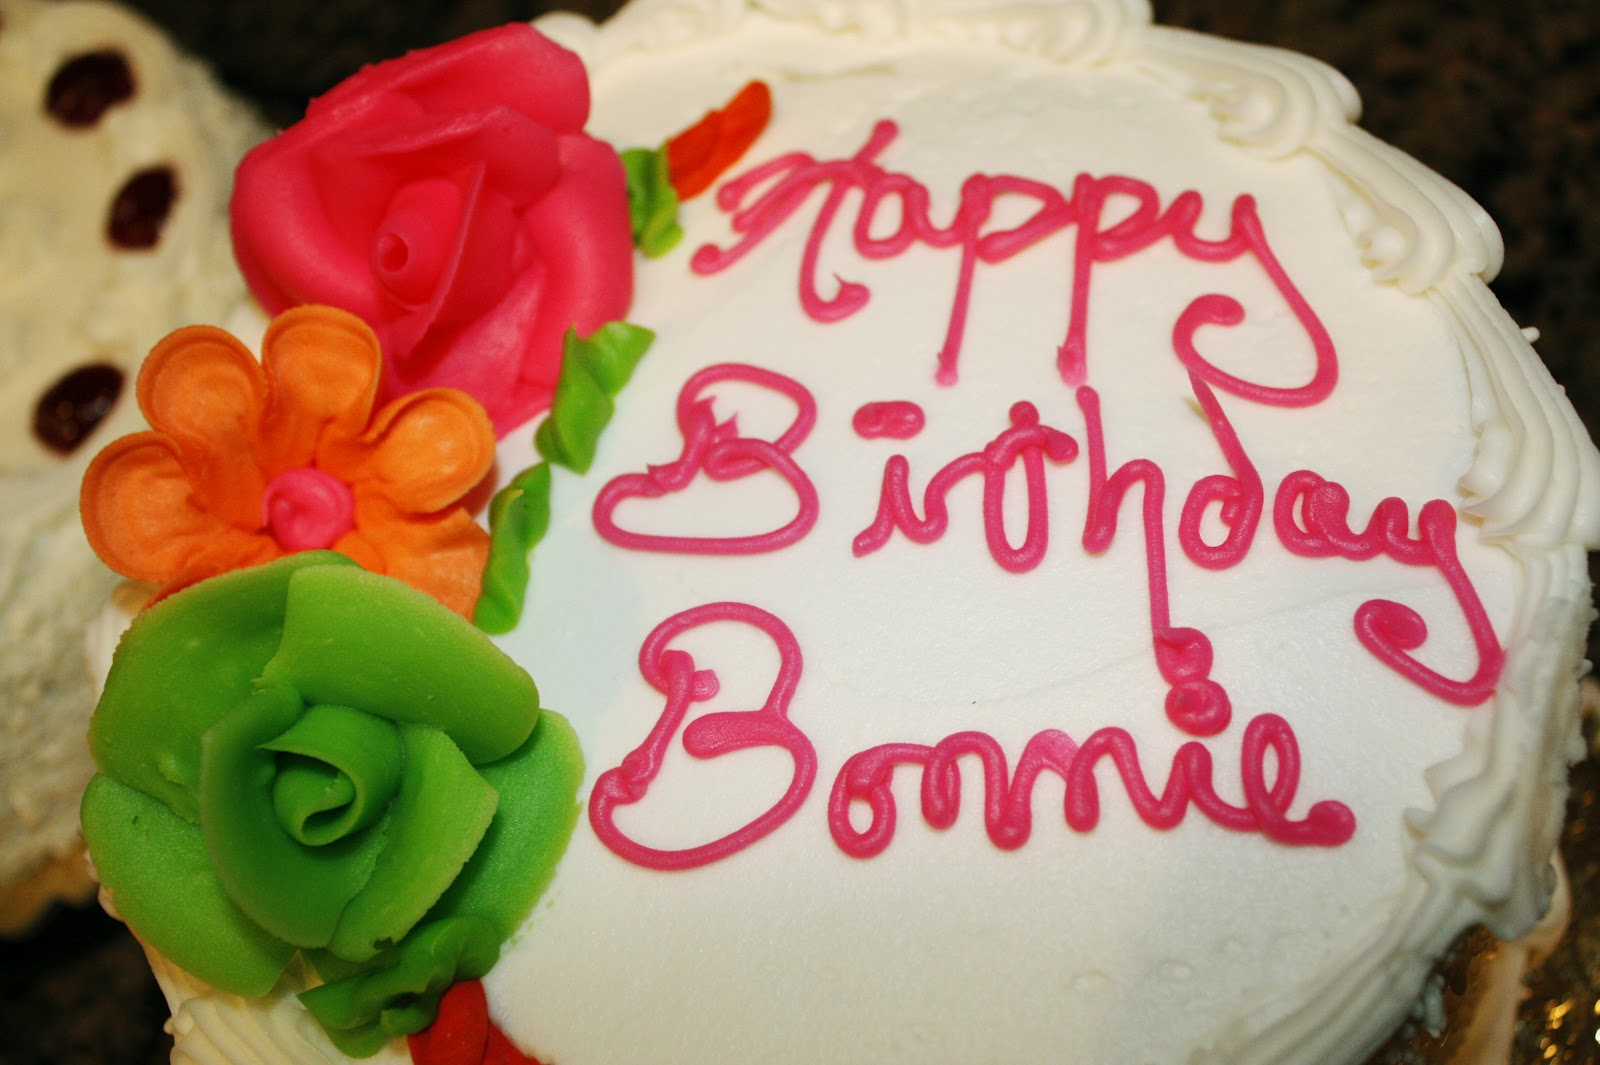 Now and now and now happy birthday bonnie boo happy birthday bonnie boo publicscrutiny Gallery